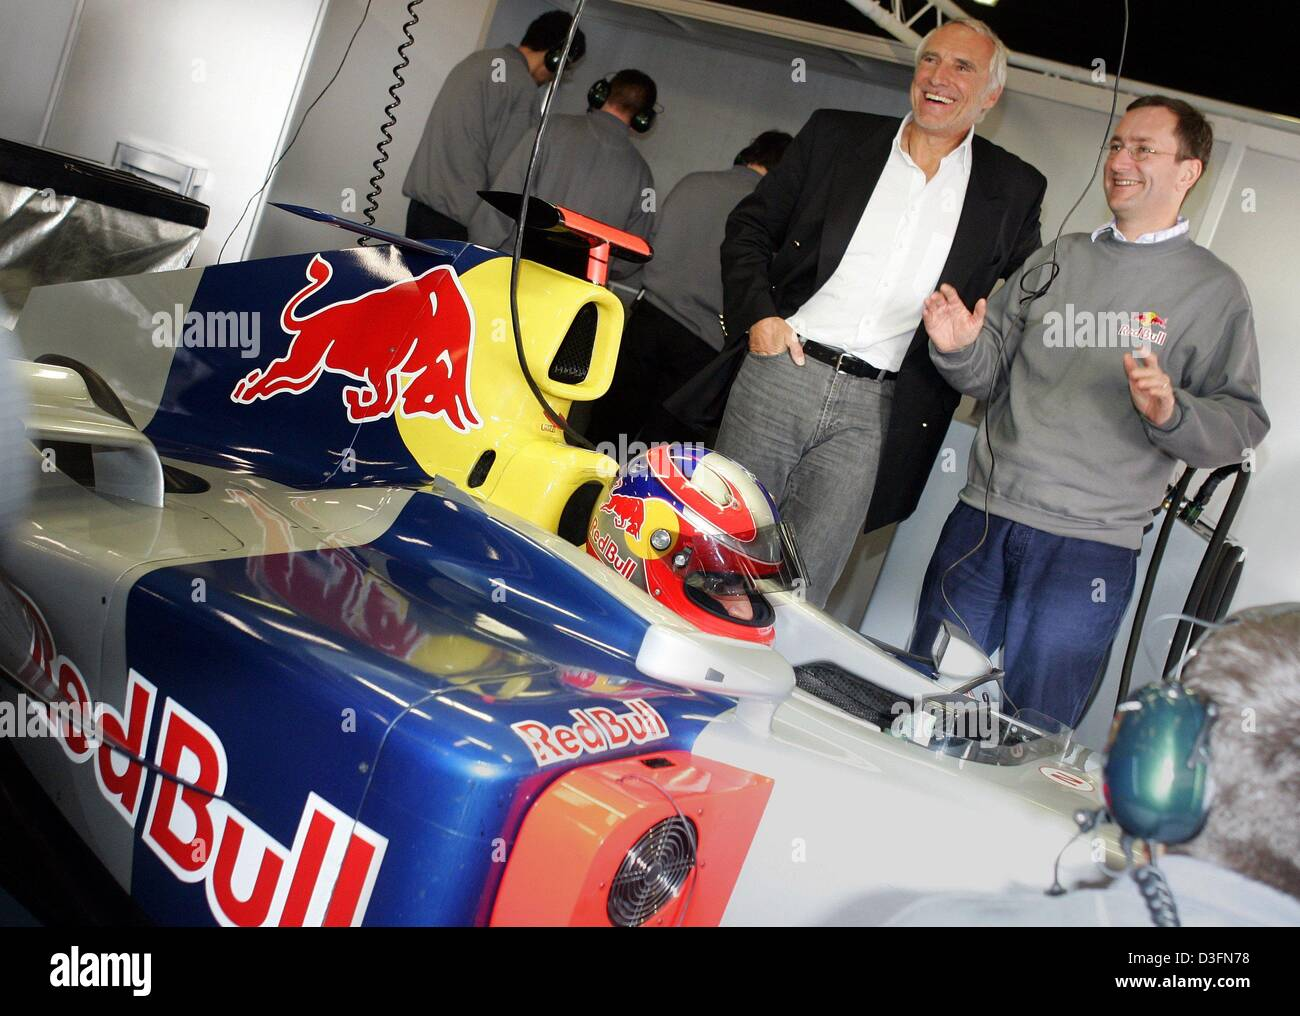 (dpa) - Red Bull owner Dietrich Mateschitz (back L) and Red Bull racing team head Tony Purnell (R) smile as they - Stock Image